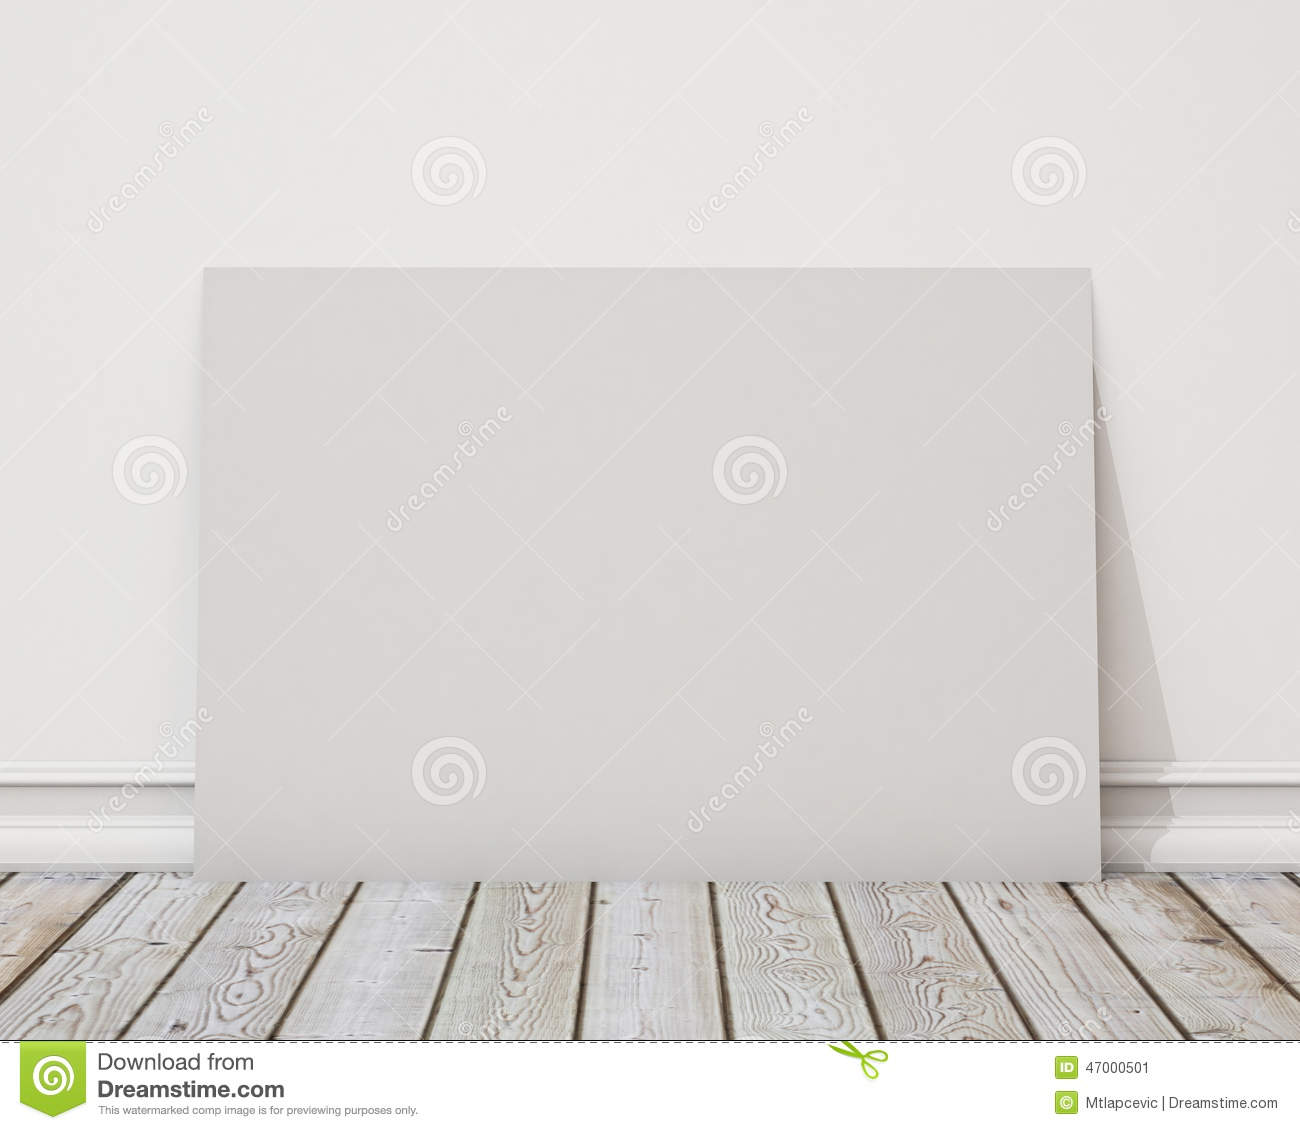 Undergraduate Architecture Portfolio 43388714 as well Event spaces as well Stock Illustration Mock Up Blank Horizontal Poster White Wall Wooden Floor Background Template Design Image47000501 moreover Hip And Ridge Timber Frame Joinery additionally Portsmouth. on simple floor plans